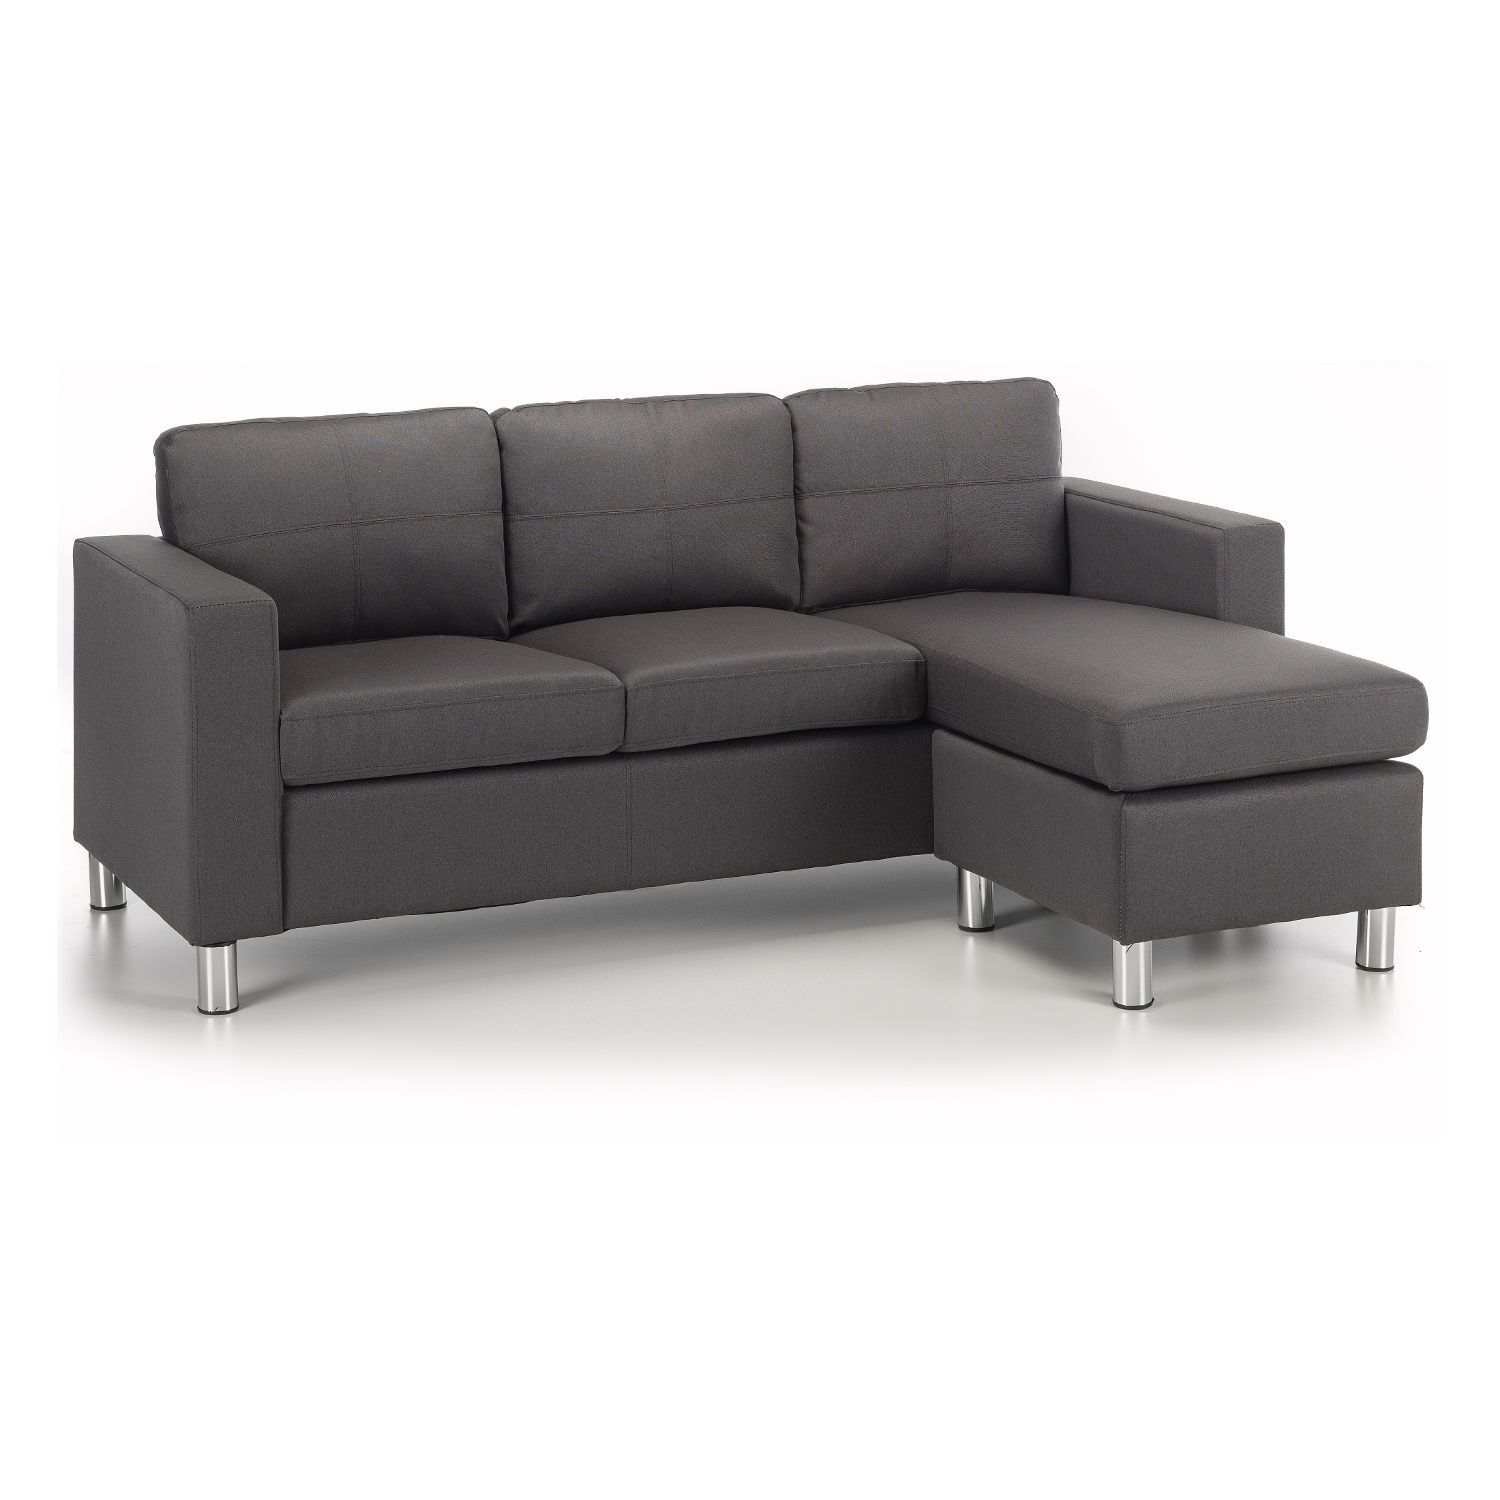 Sofas Delivered Next Day Black Fabric Corner Sofa Bed Delivery Brokeasshome